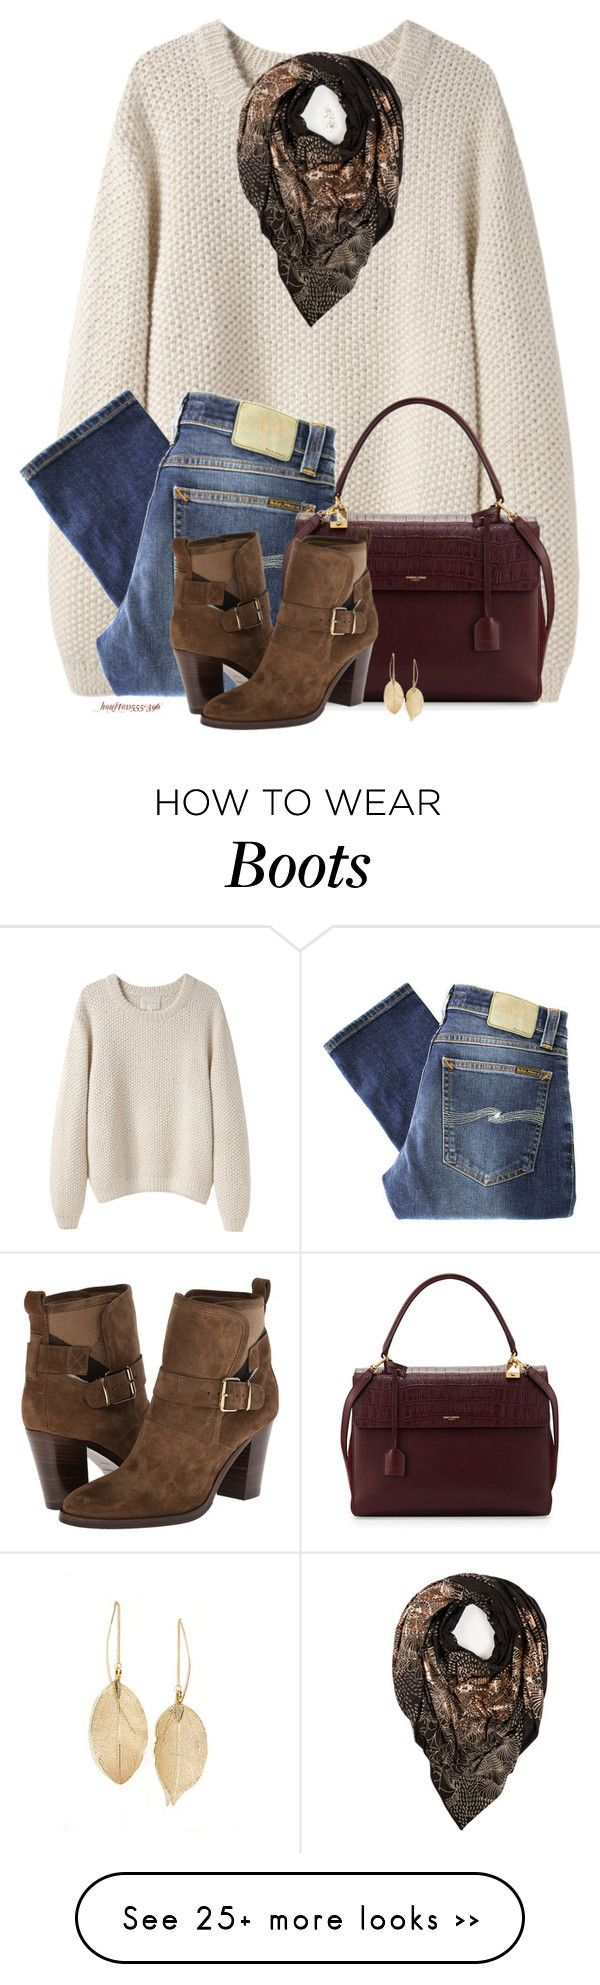 """""""Scarf & Boots"""" by houston555-396 on Polyvore featuring La Garçonne Moderne, Sophie Darling, Nudie Jeans Co., Yves Saint Laurent, Burberry and Lulu*s"""